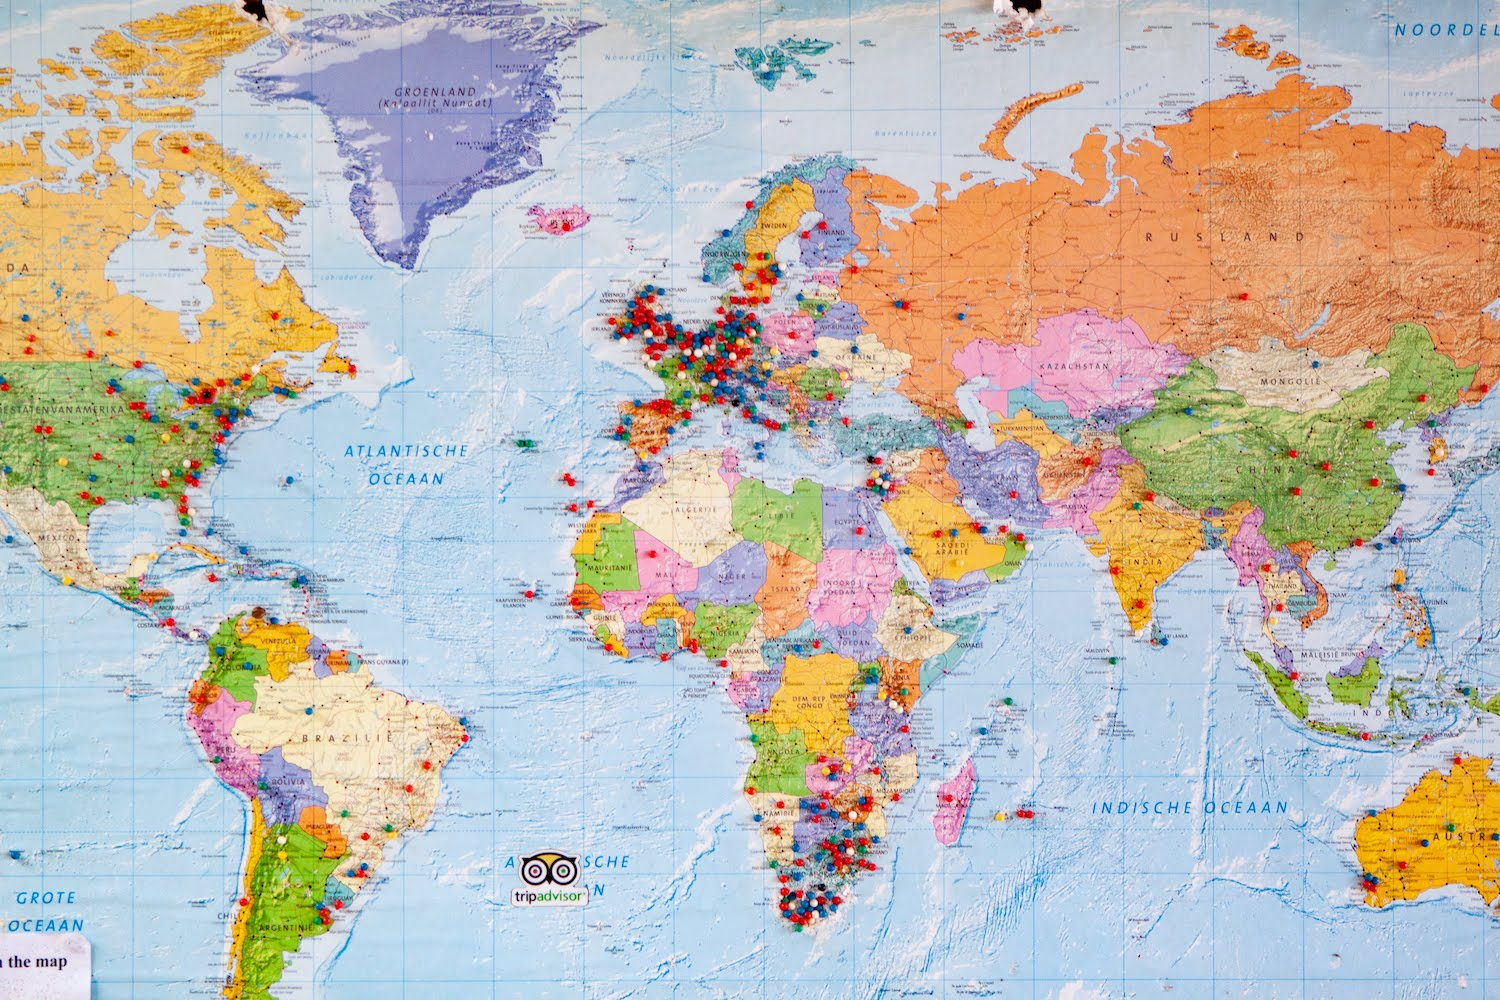 How many countries have you been to cover image of world map with pins.